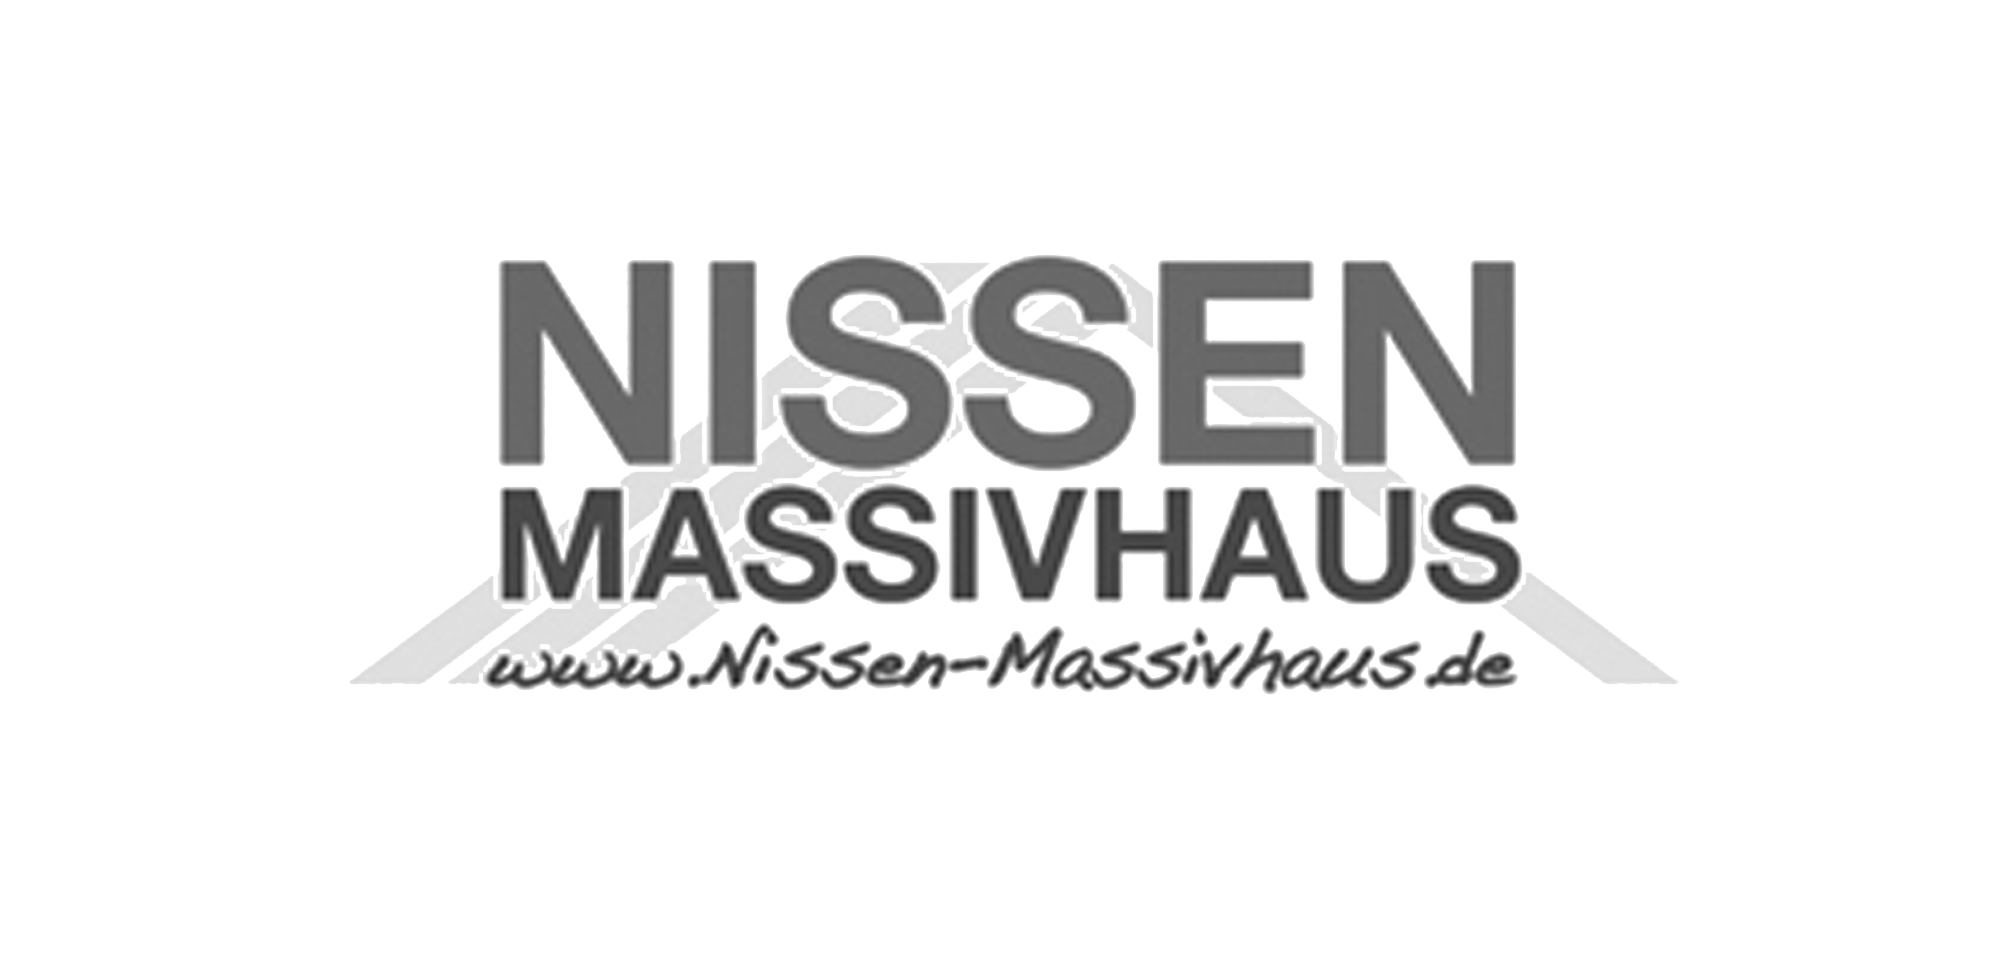 nissen_massivhaus_logo_website.png